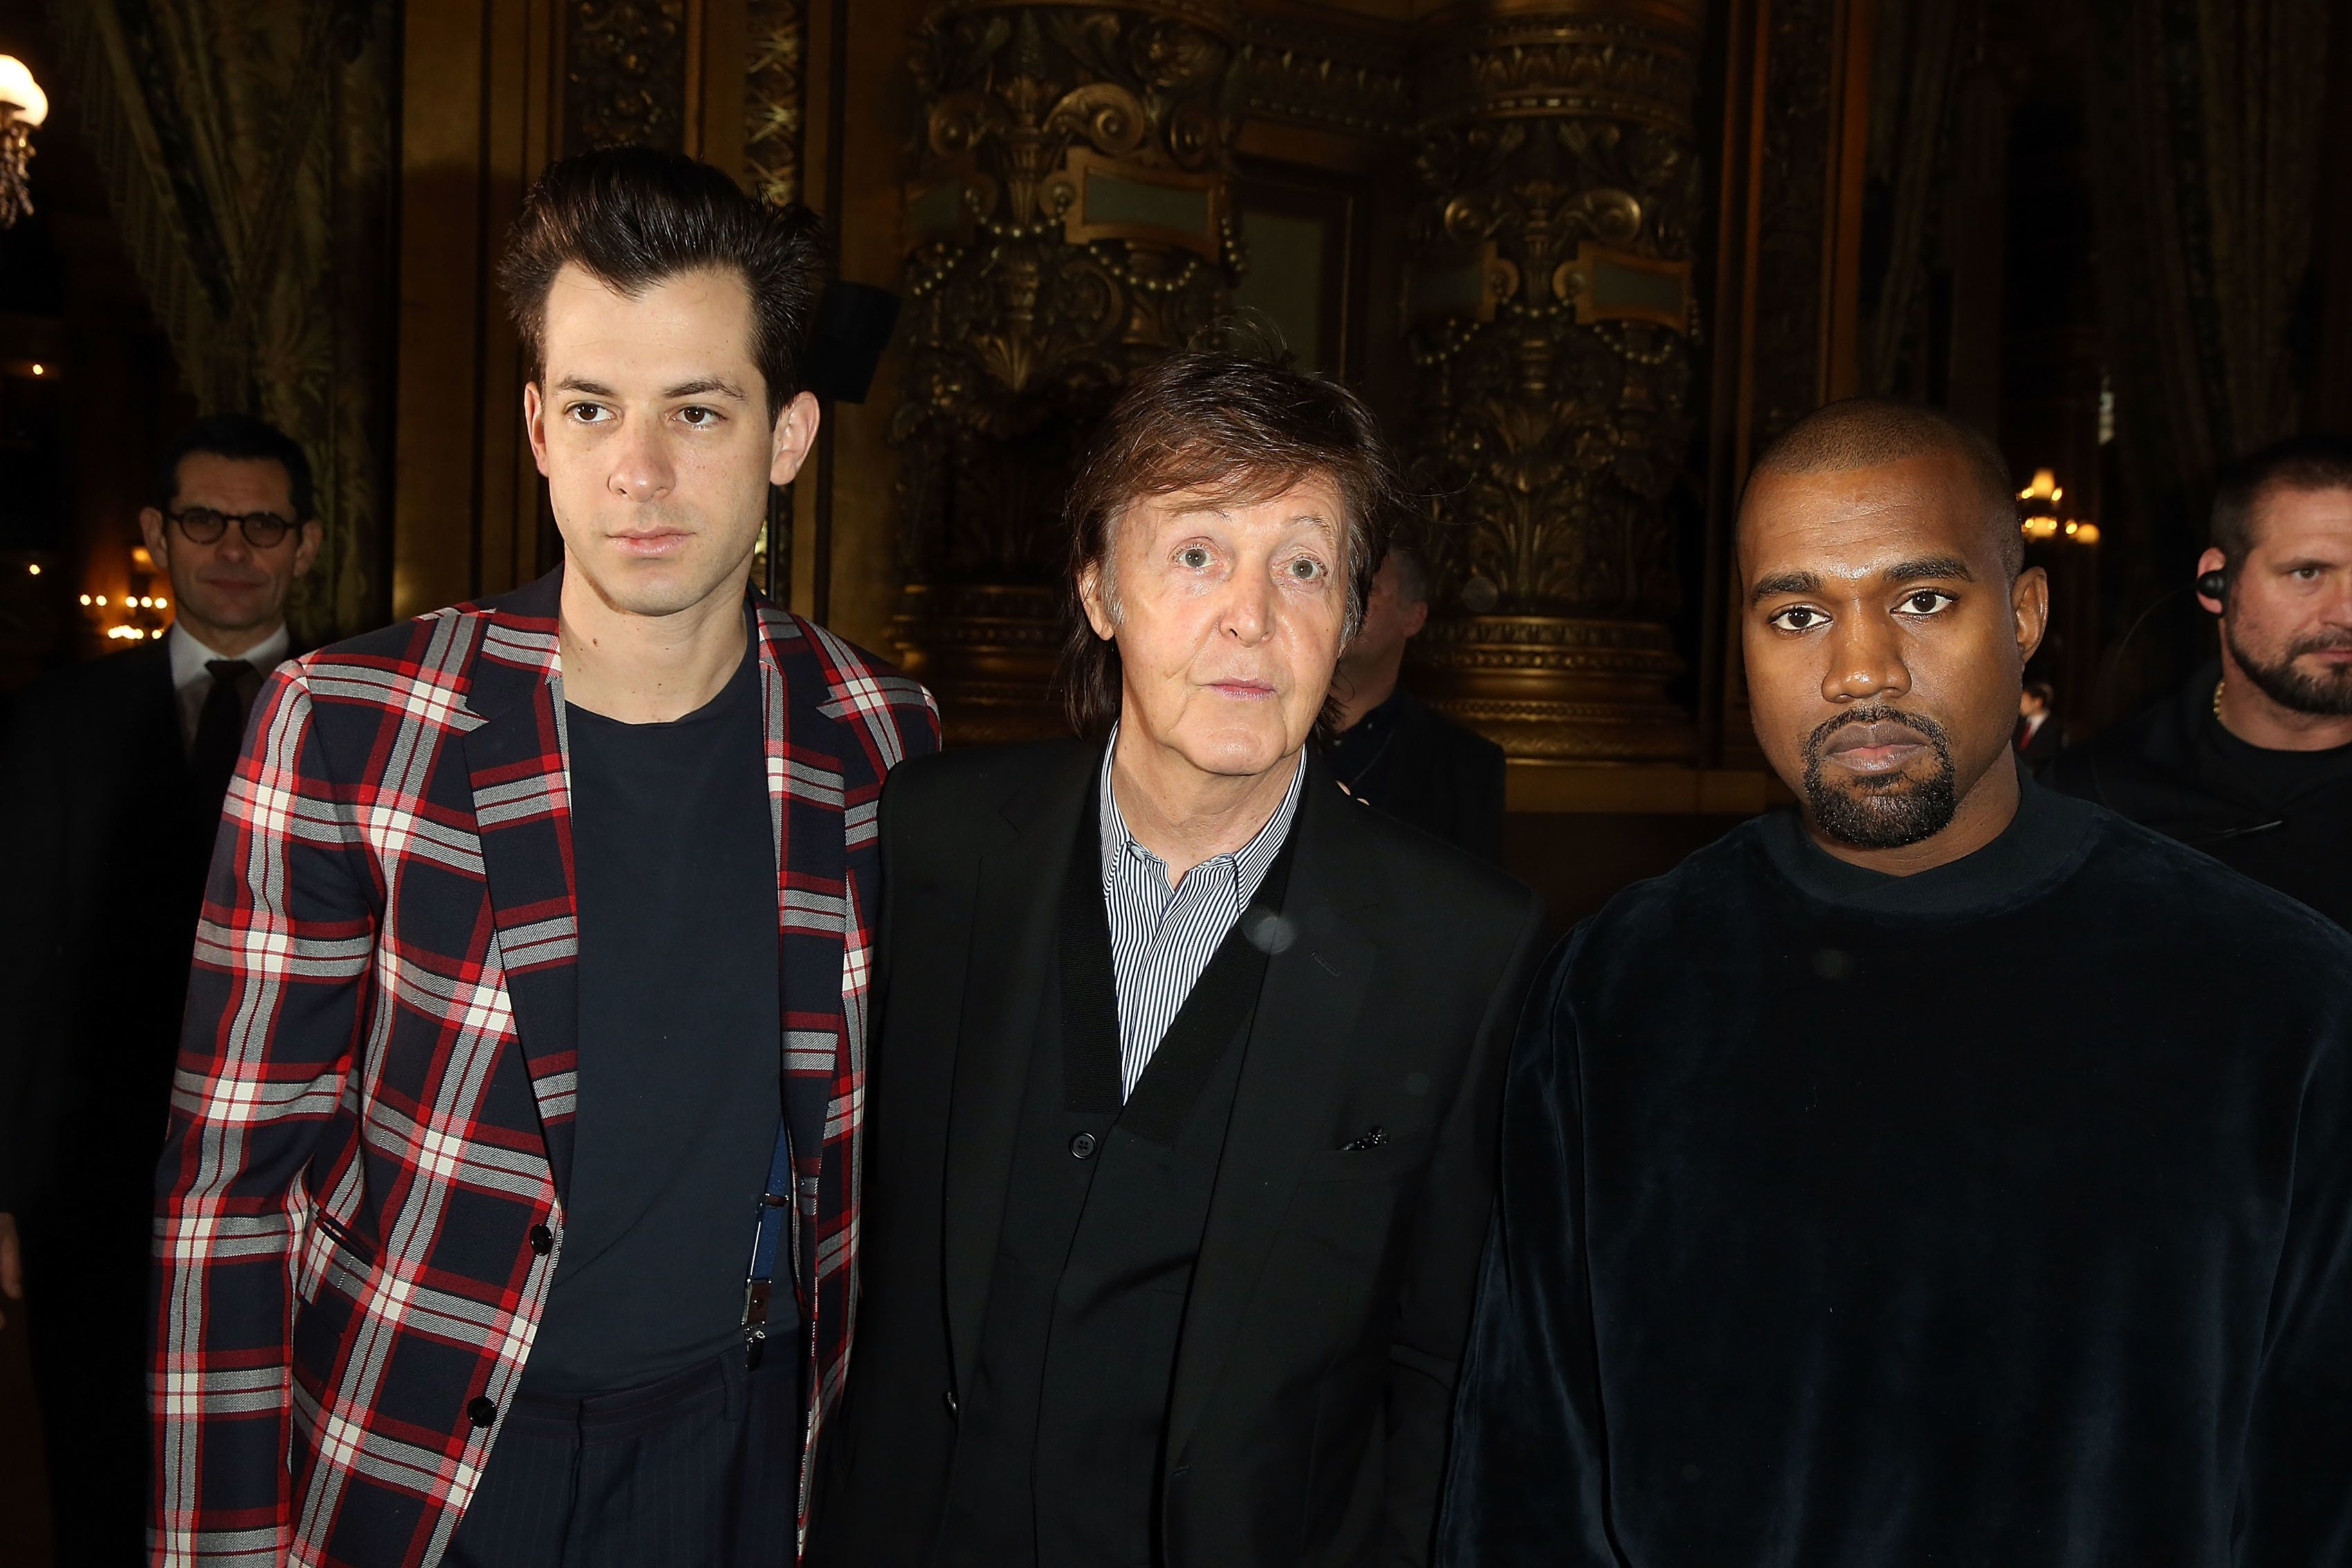 PARIS, FRANCE - MARCH 09:  Mark Ronson, Paul McCartney and Kanye West attend the Stella McCartney show as part of the Paris Fashion Week Womenswear Fall/Winter 2015/2016 at Opera Garnier on March 9, 2015 in Paris, France.  (Photo by Michel Dufour/WireImage)